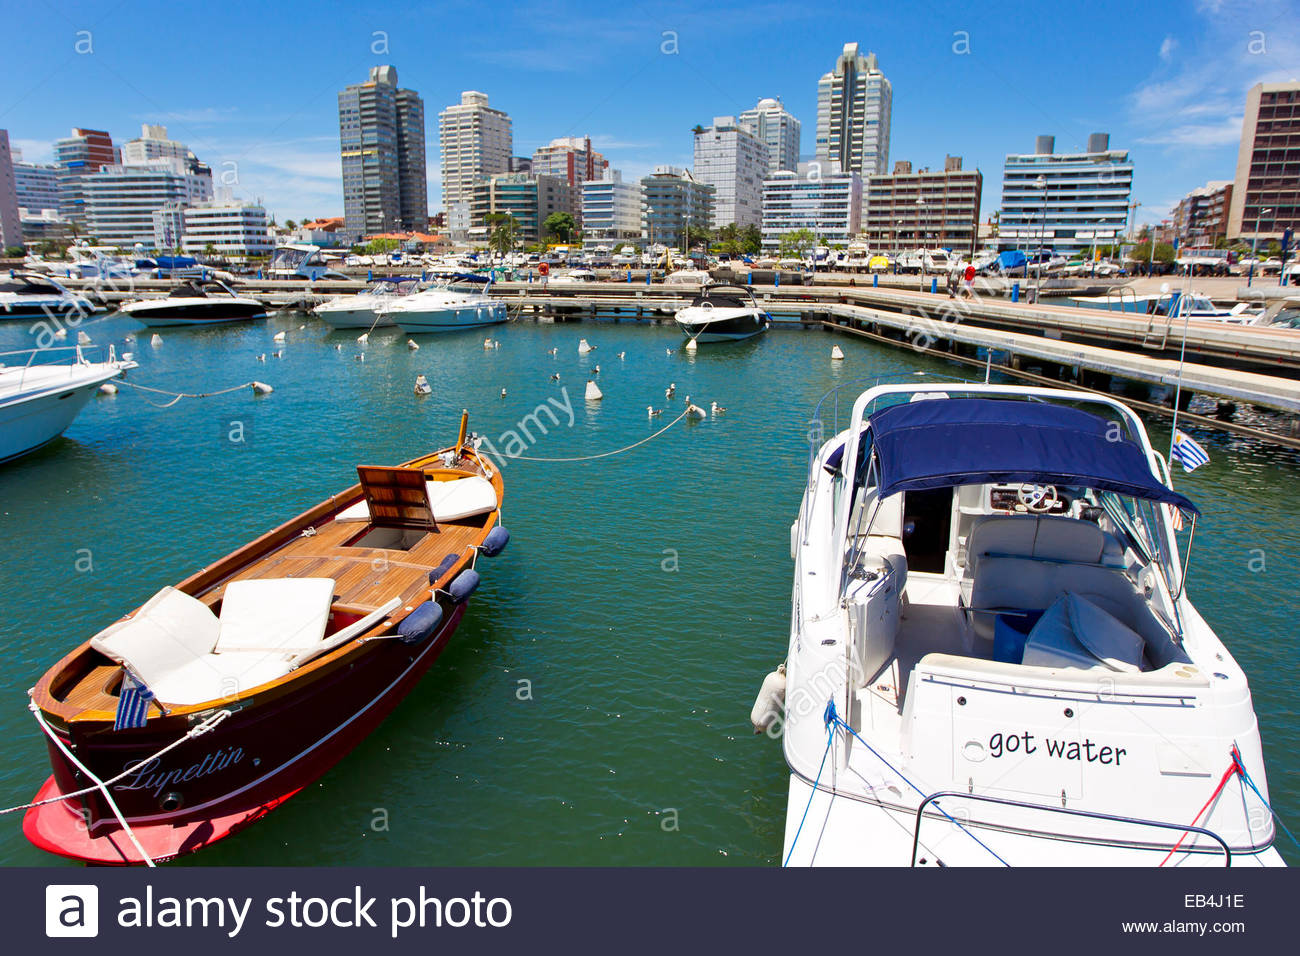 Fancy boats tied up at a city marina with a beautiful view of the Punta del Este skyline. - Stock Image